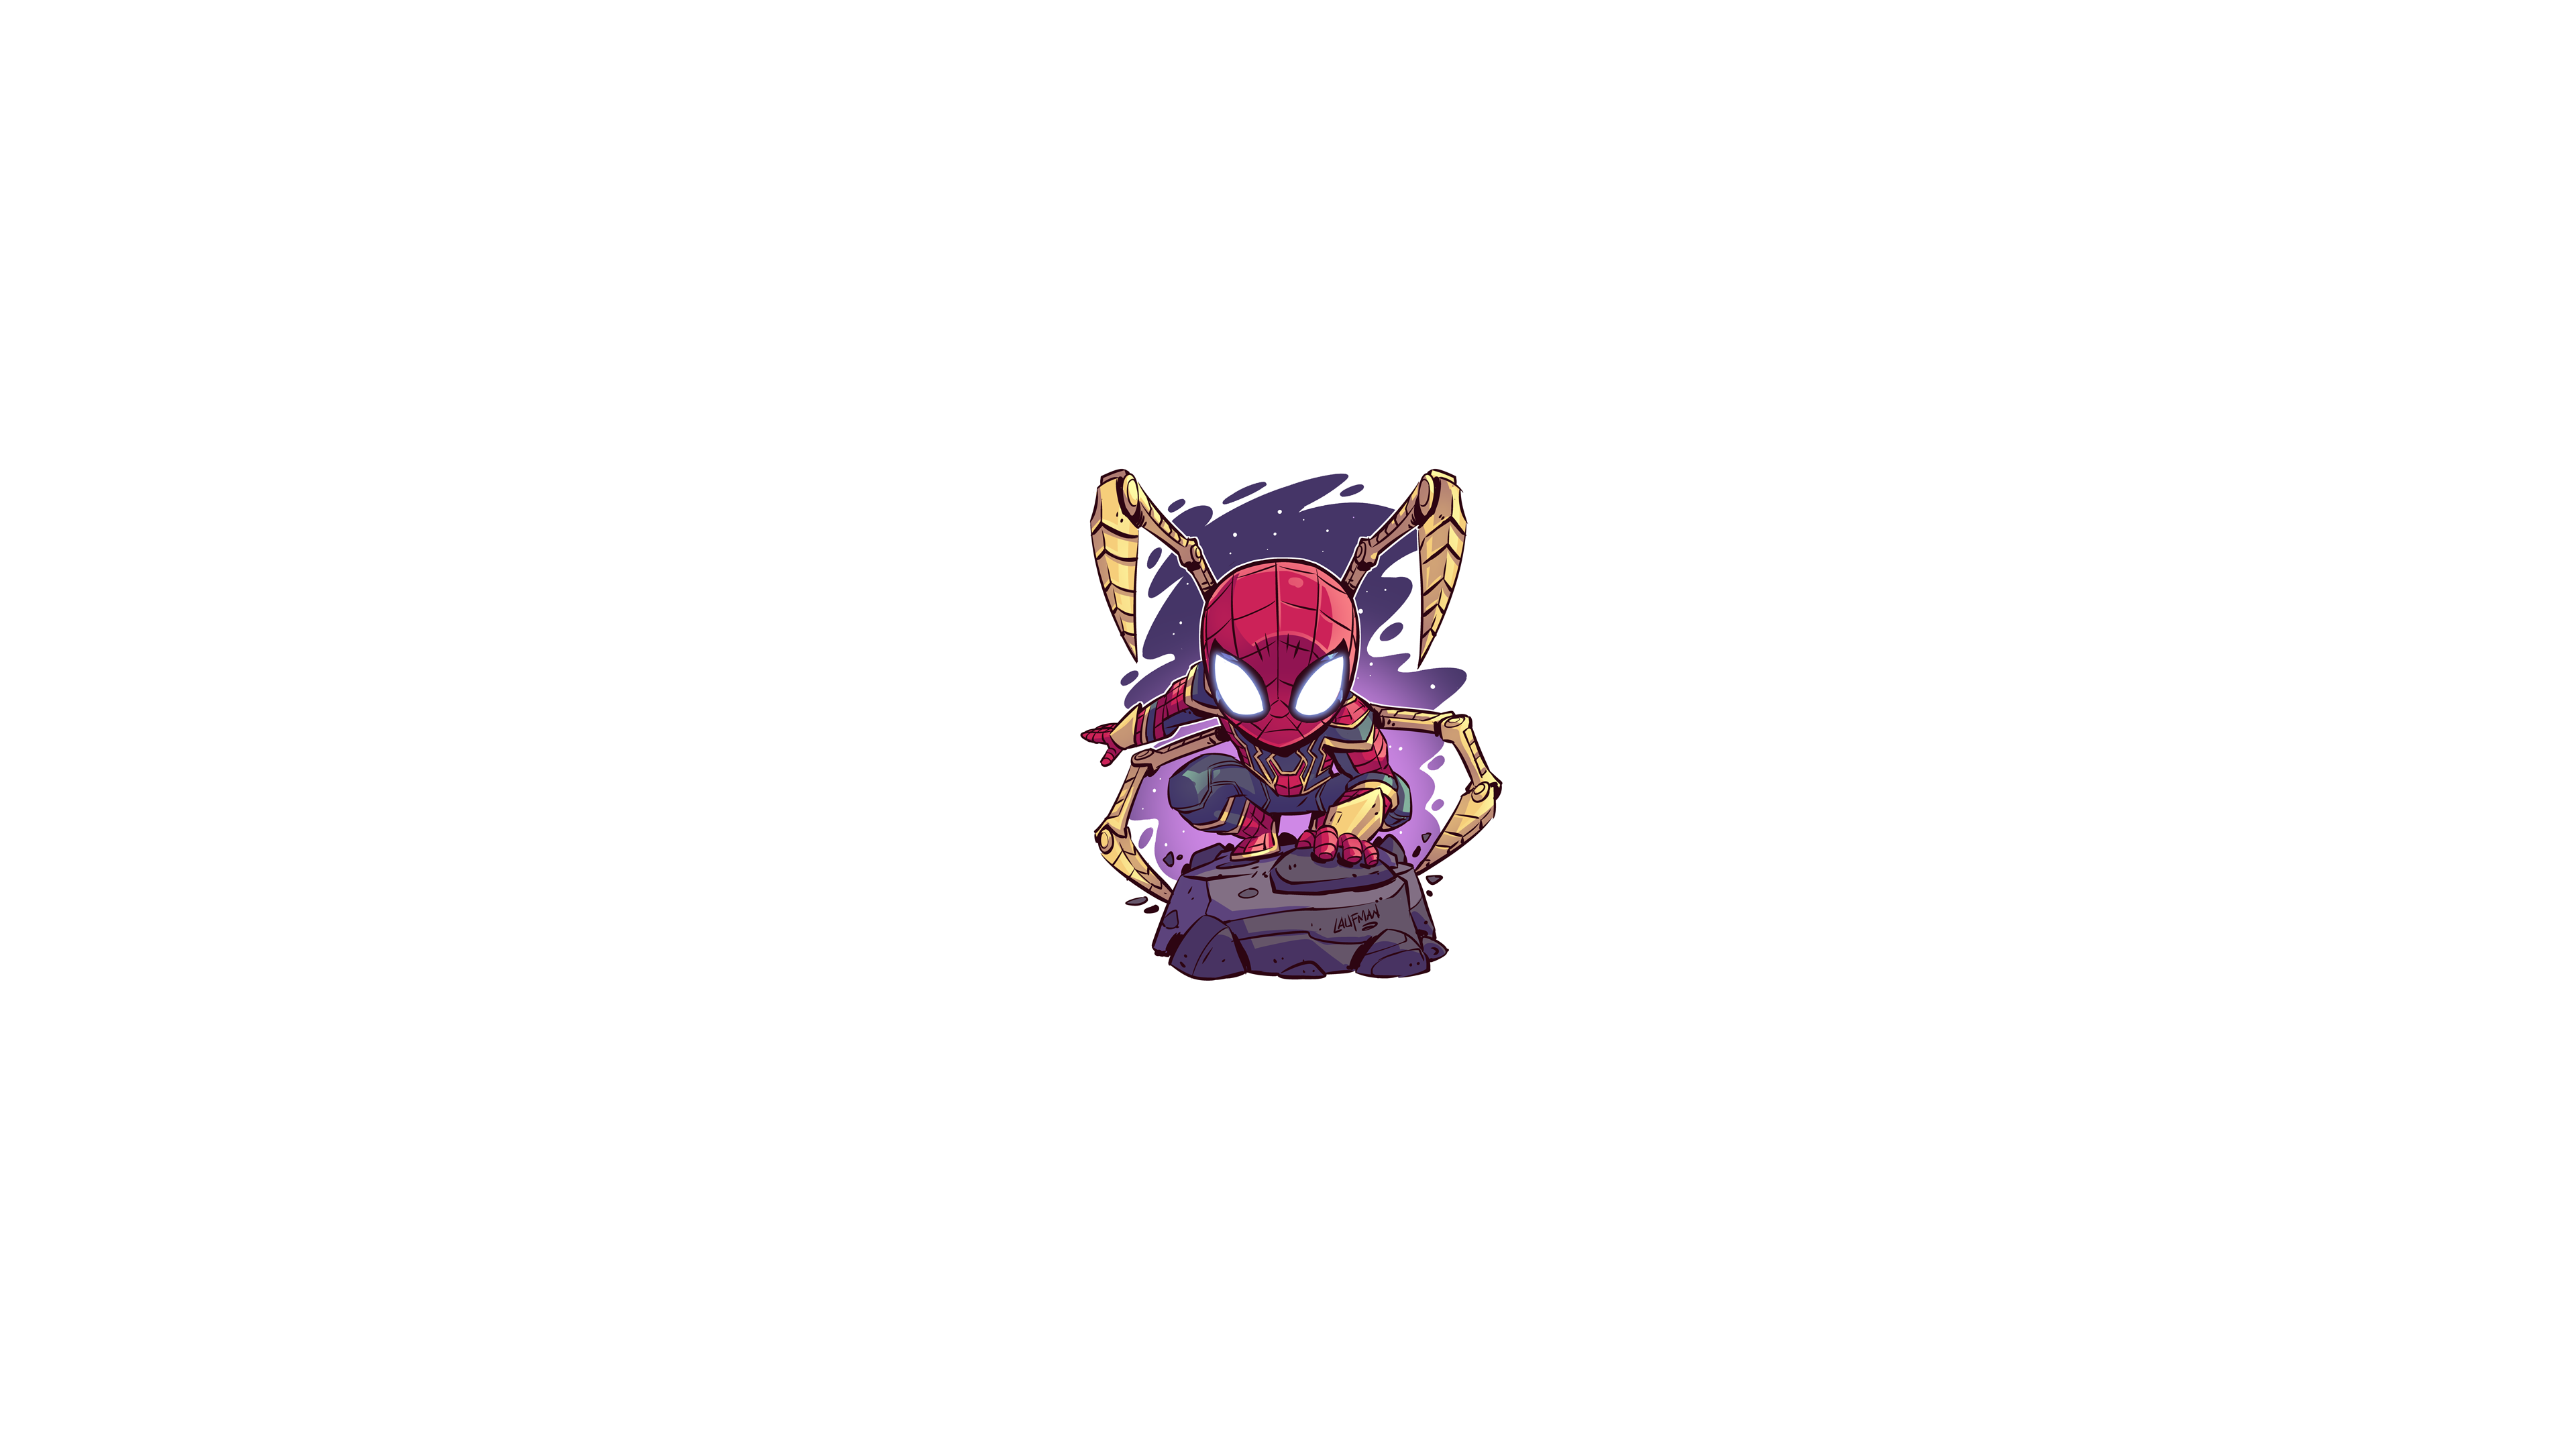 General 3840x2160 Marvel Cinematic Universe chibi minimalism Iron Spider Armor Spider-Man Marvel Comics Marvel Heroes Marvel Super Heroes Derek Laufman MCU The Avengers